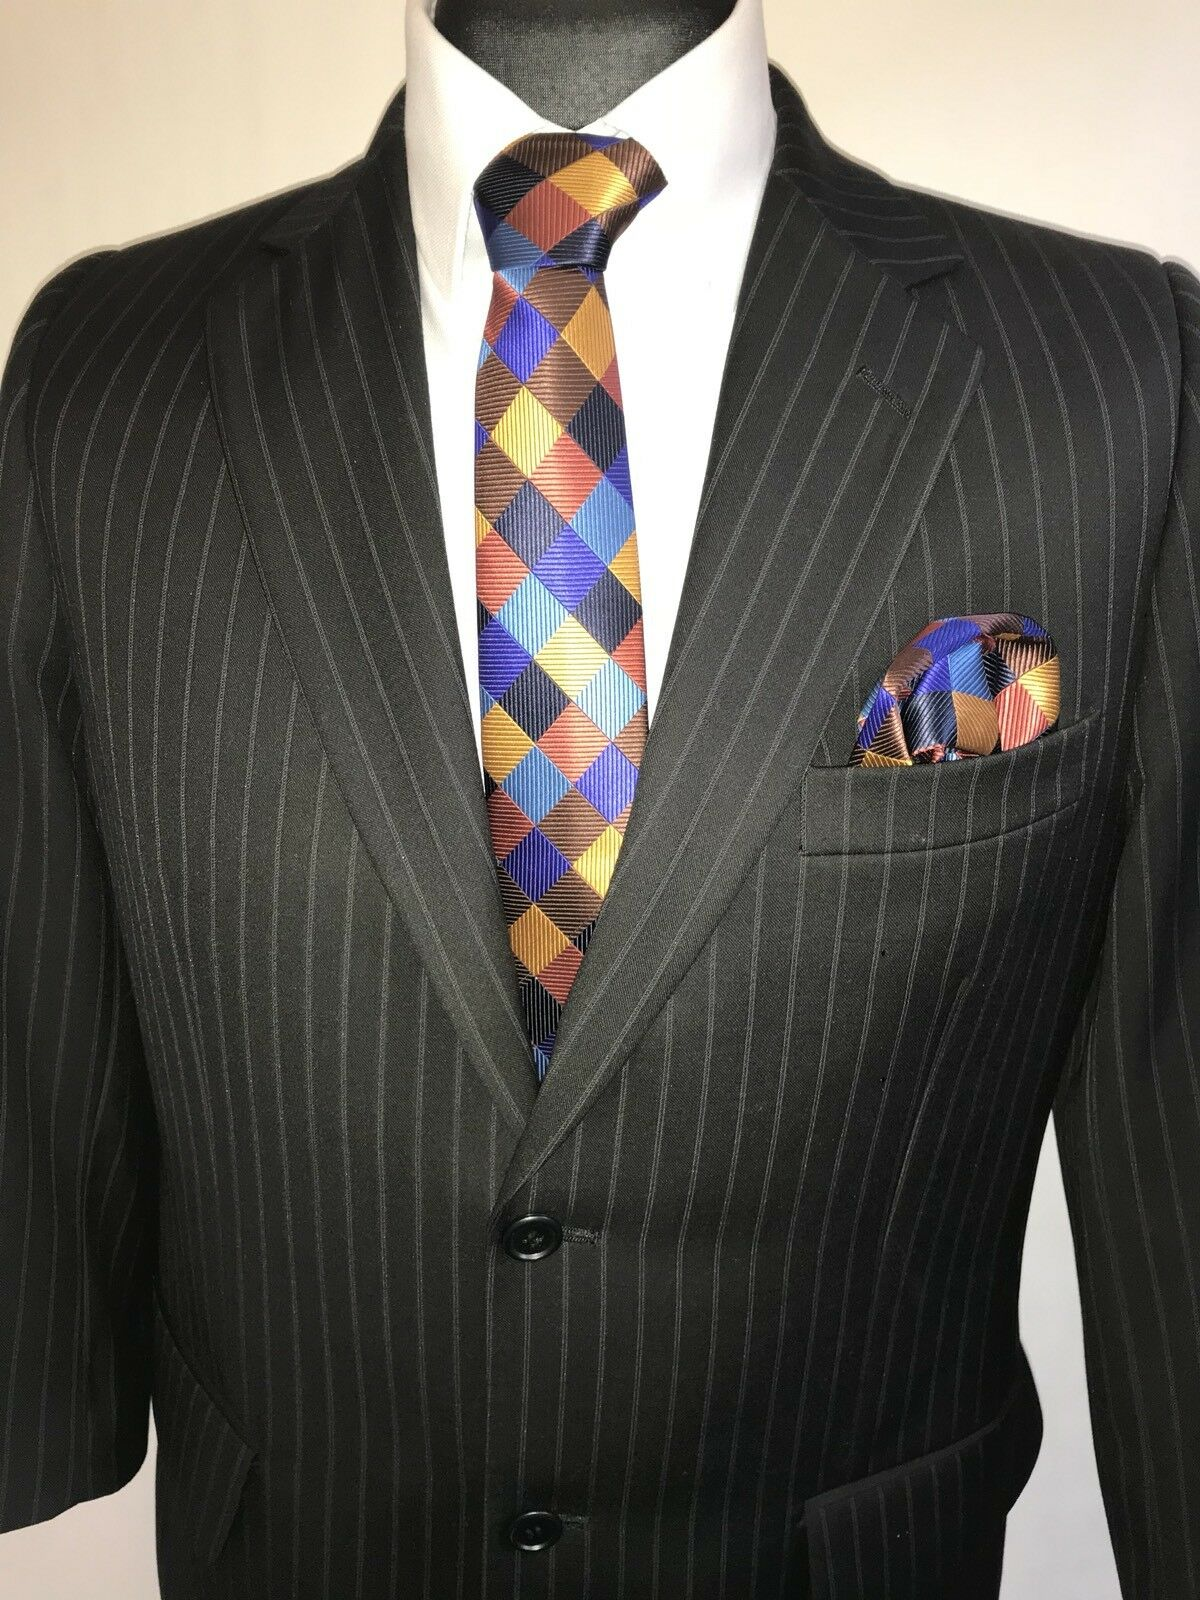 MS2040 Charlton GRAY 3/4 MEN'S rayures noires manches 3/4 GRAY Costume Blazer Jacket Taille 40 S c9e8f3